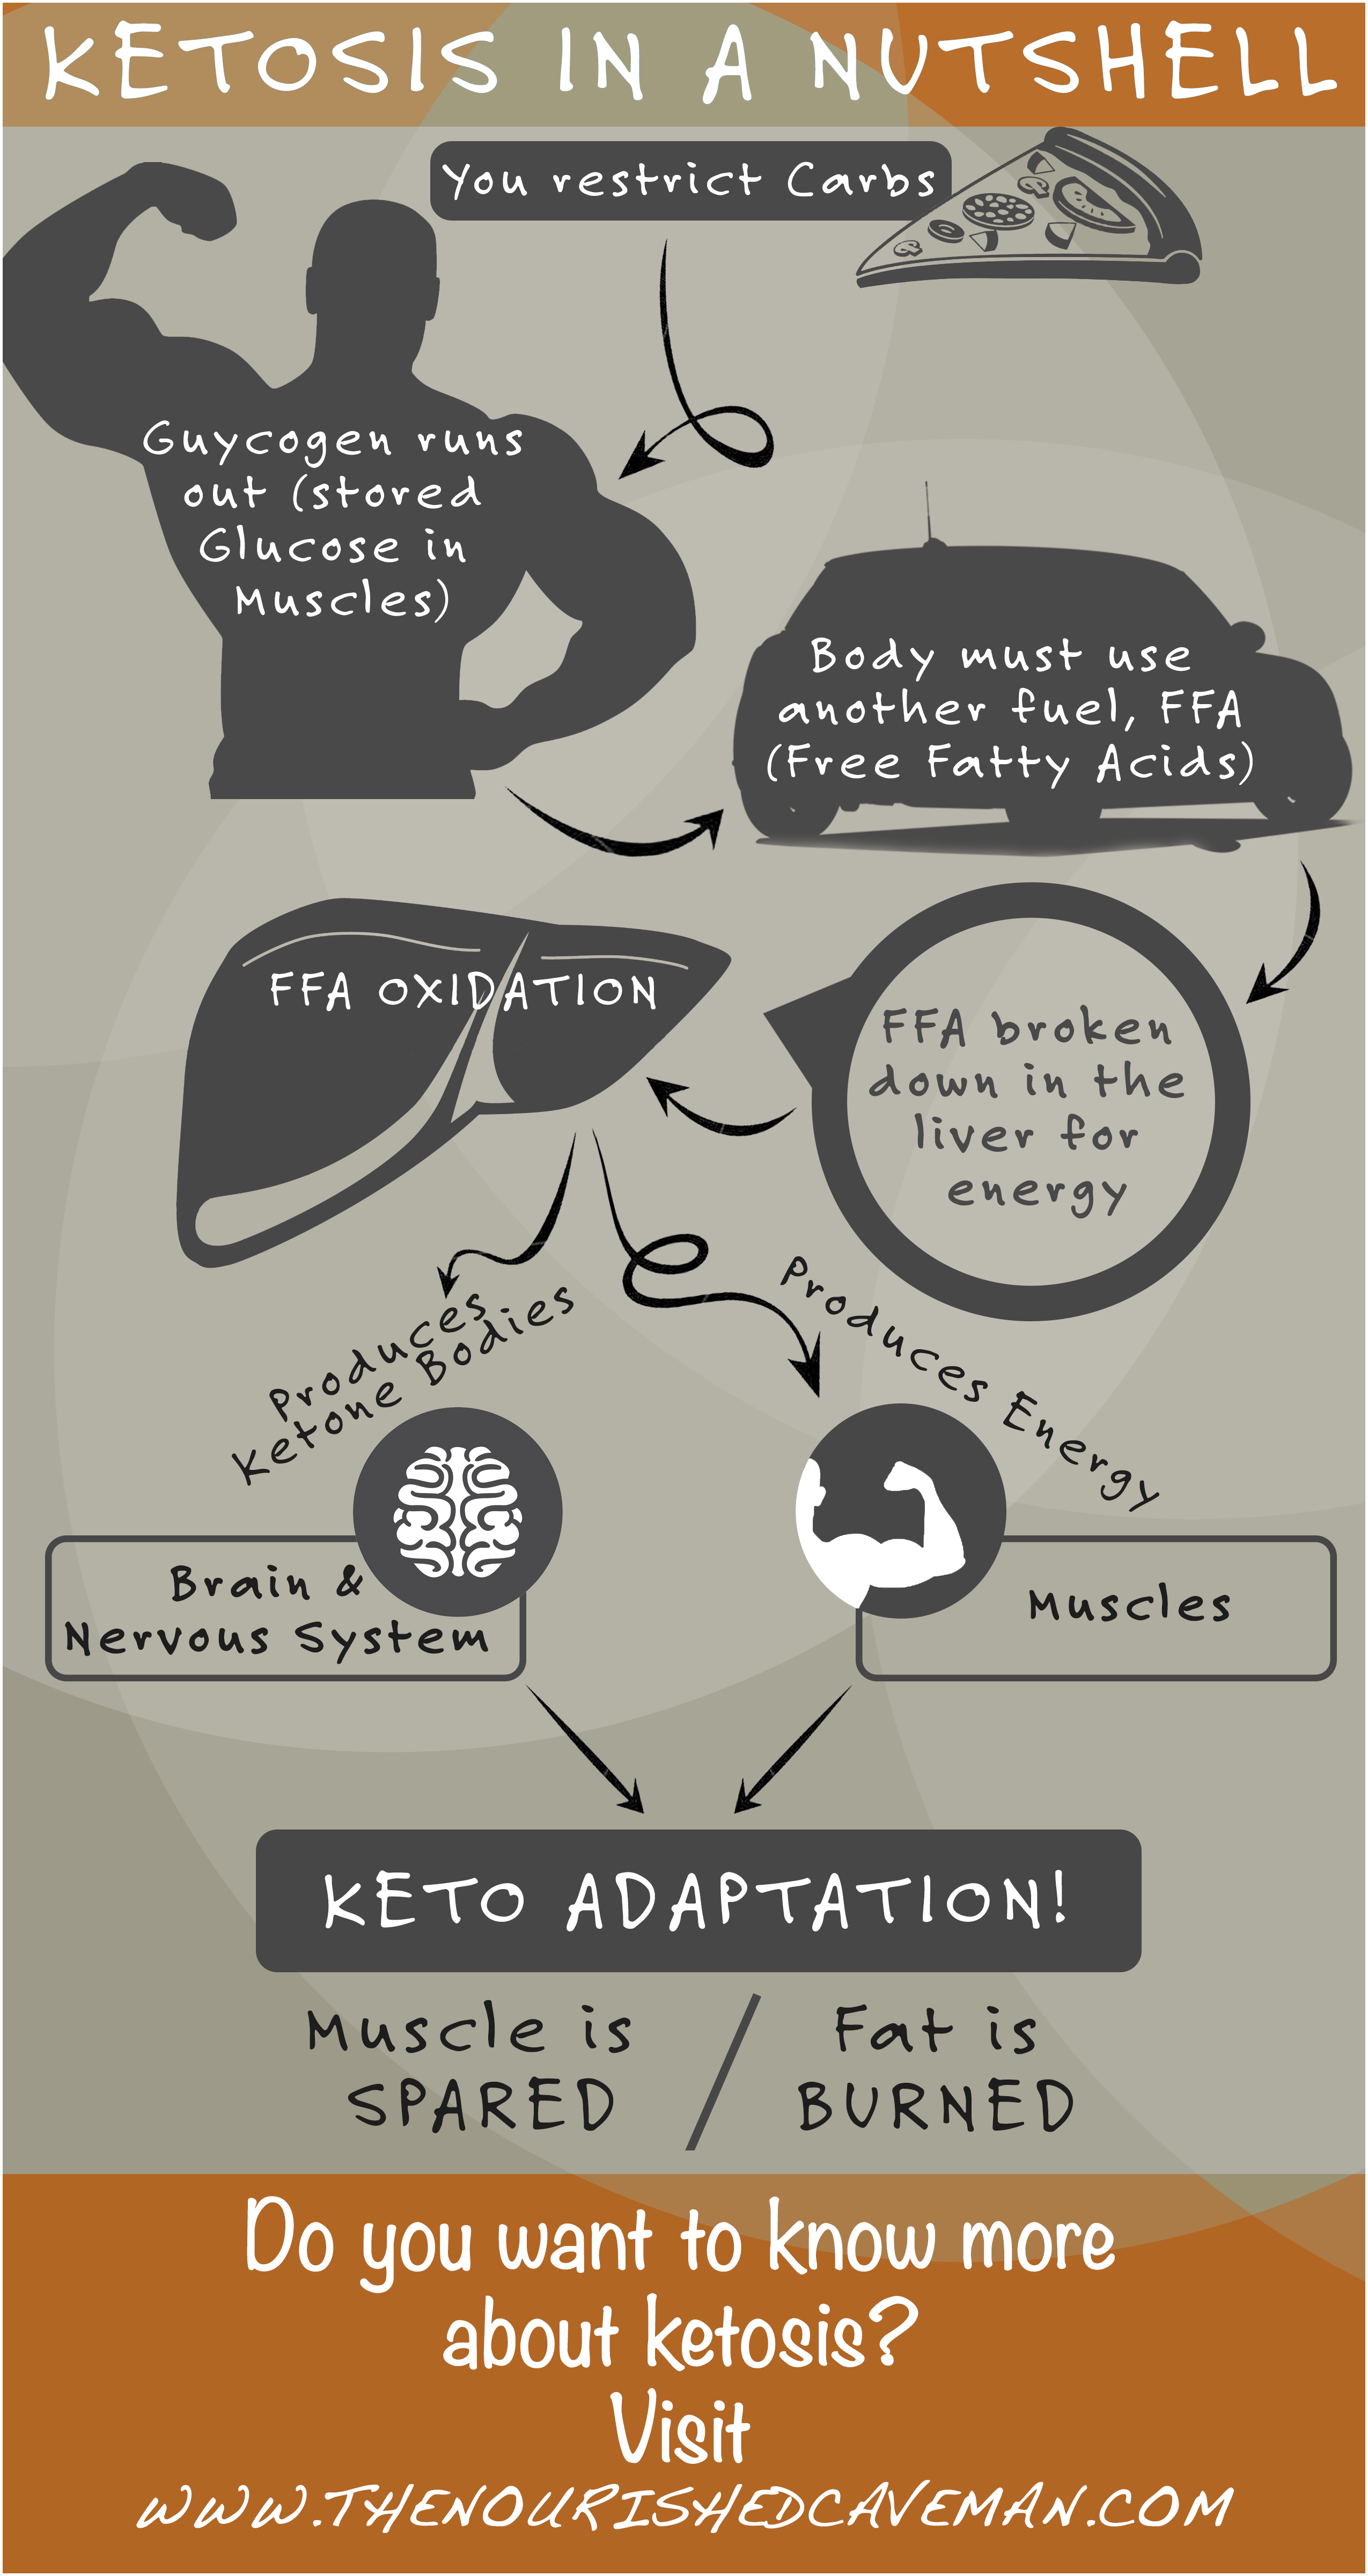 Ketosis in a nutshell